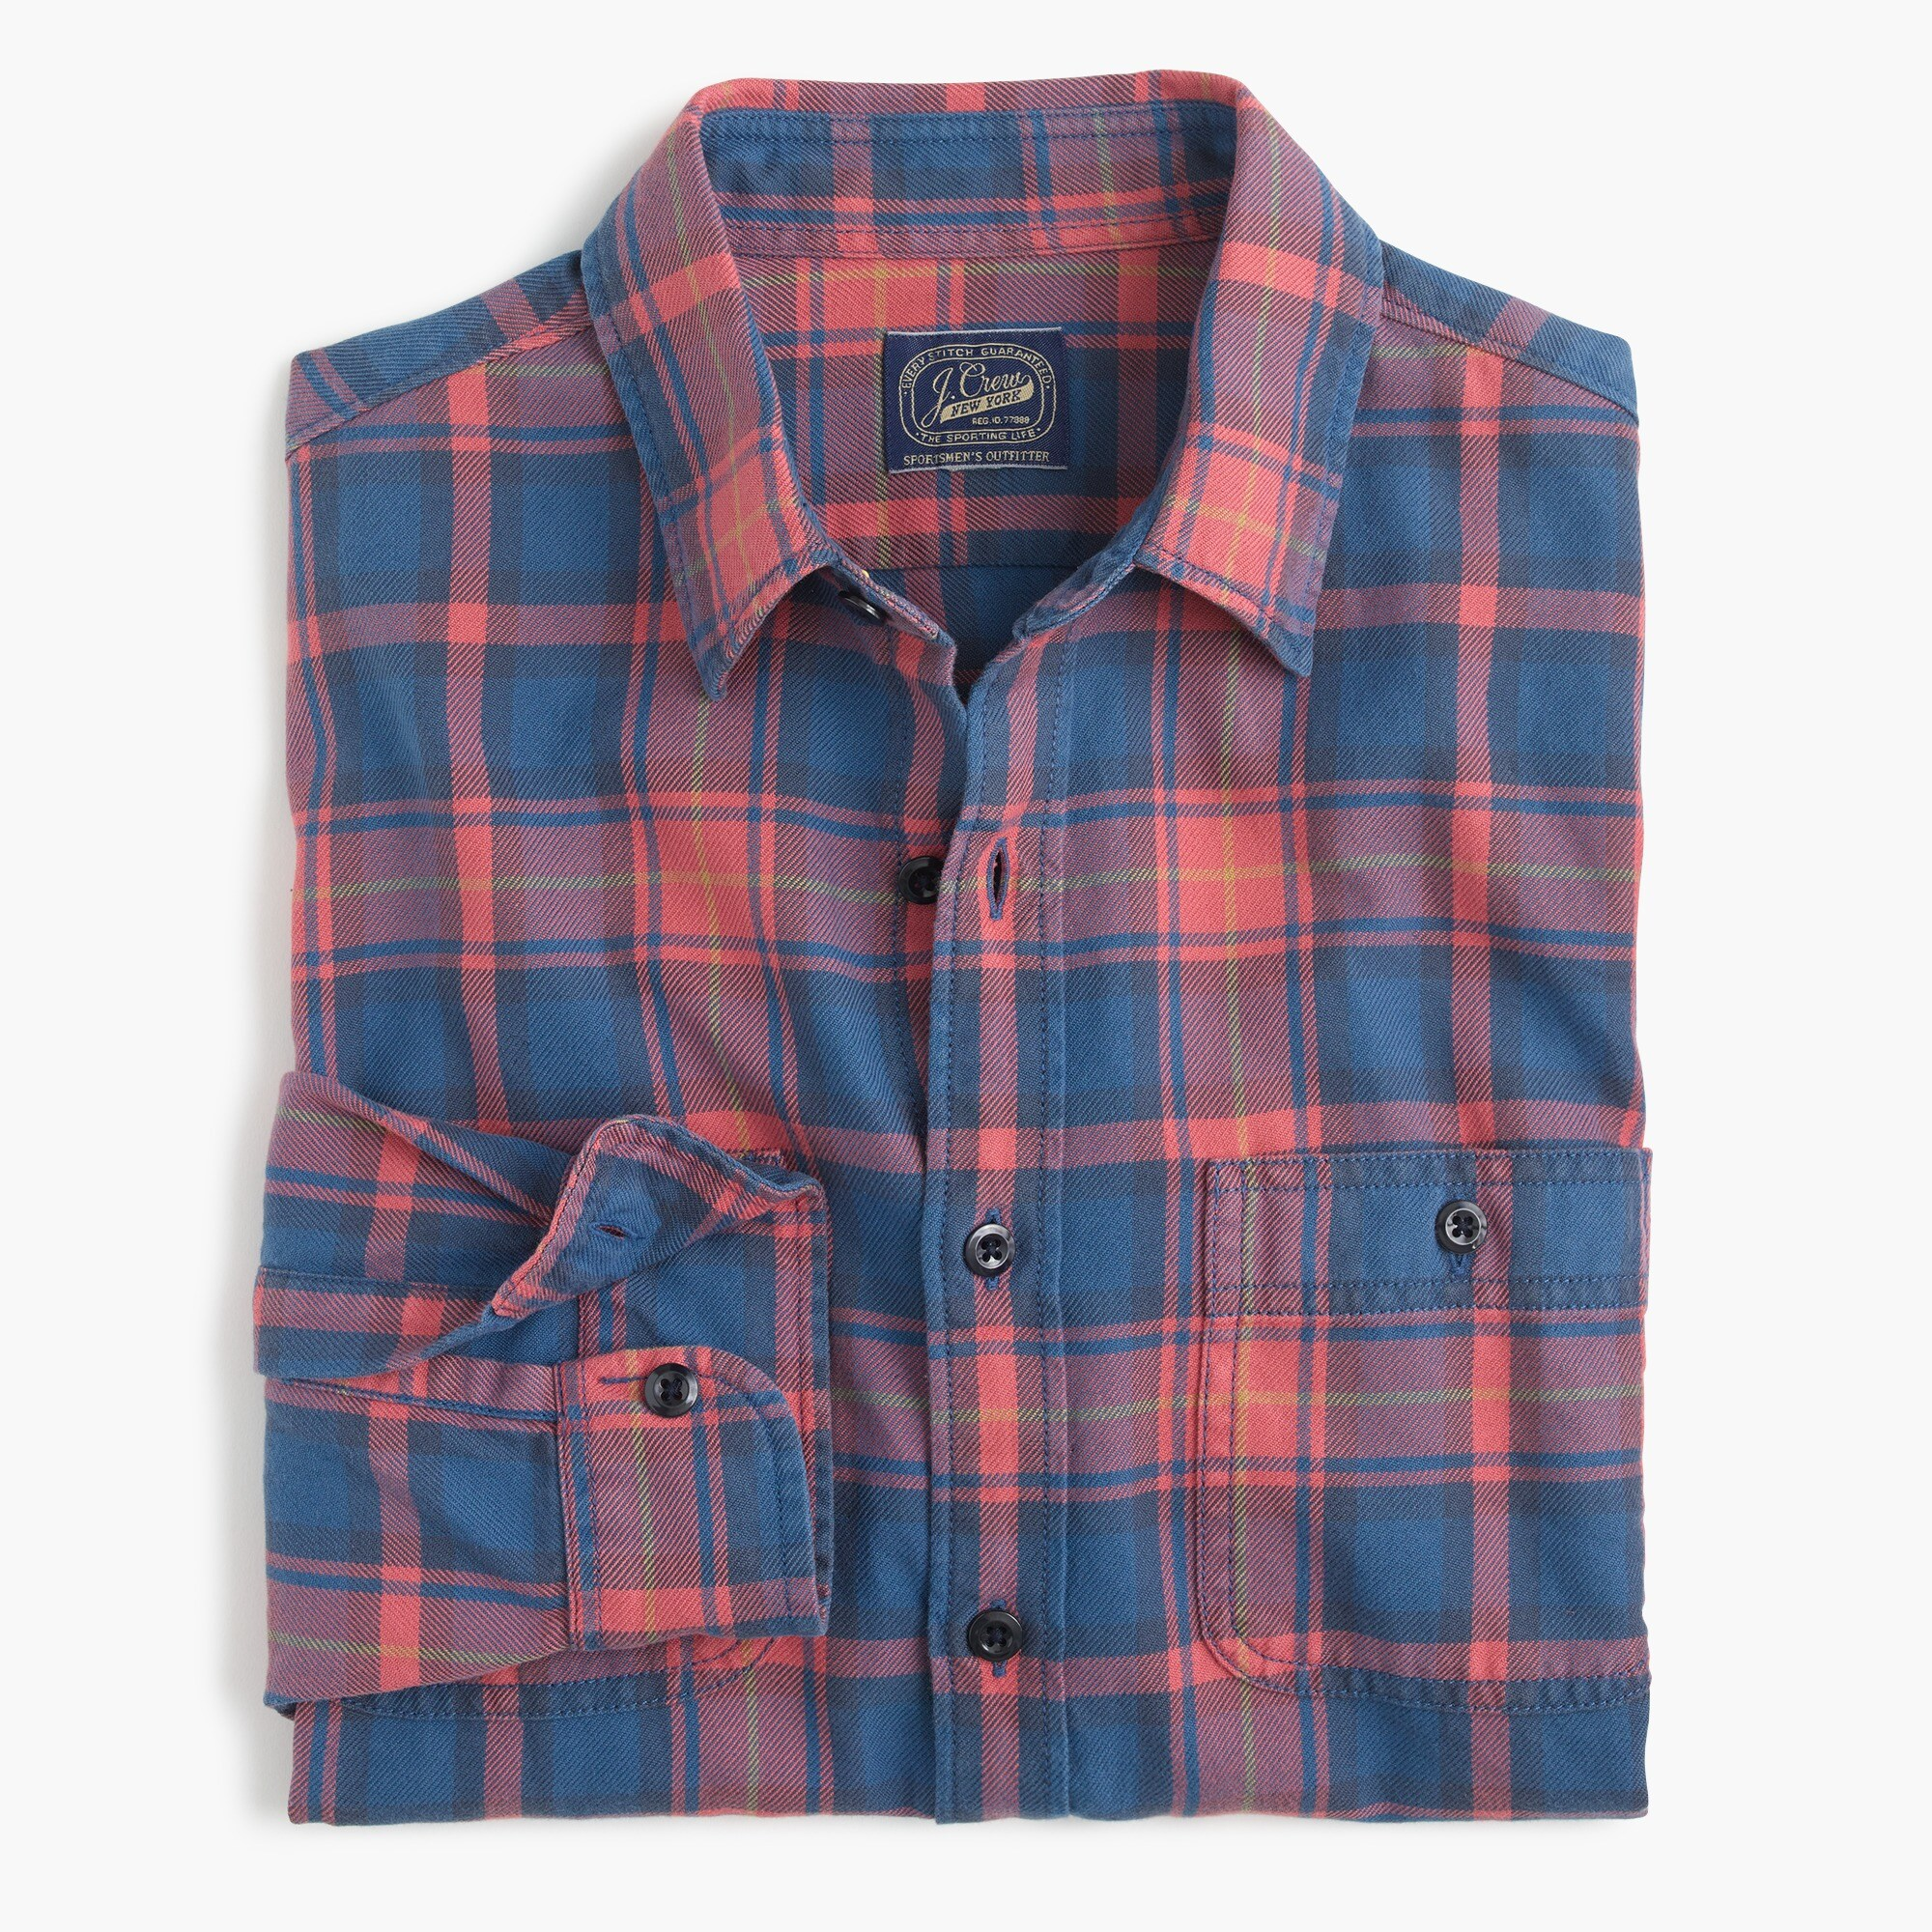 Midweight flannel shirt in red and blue plaid